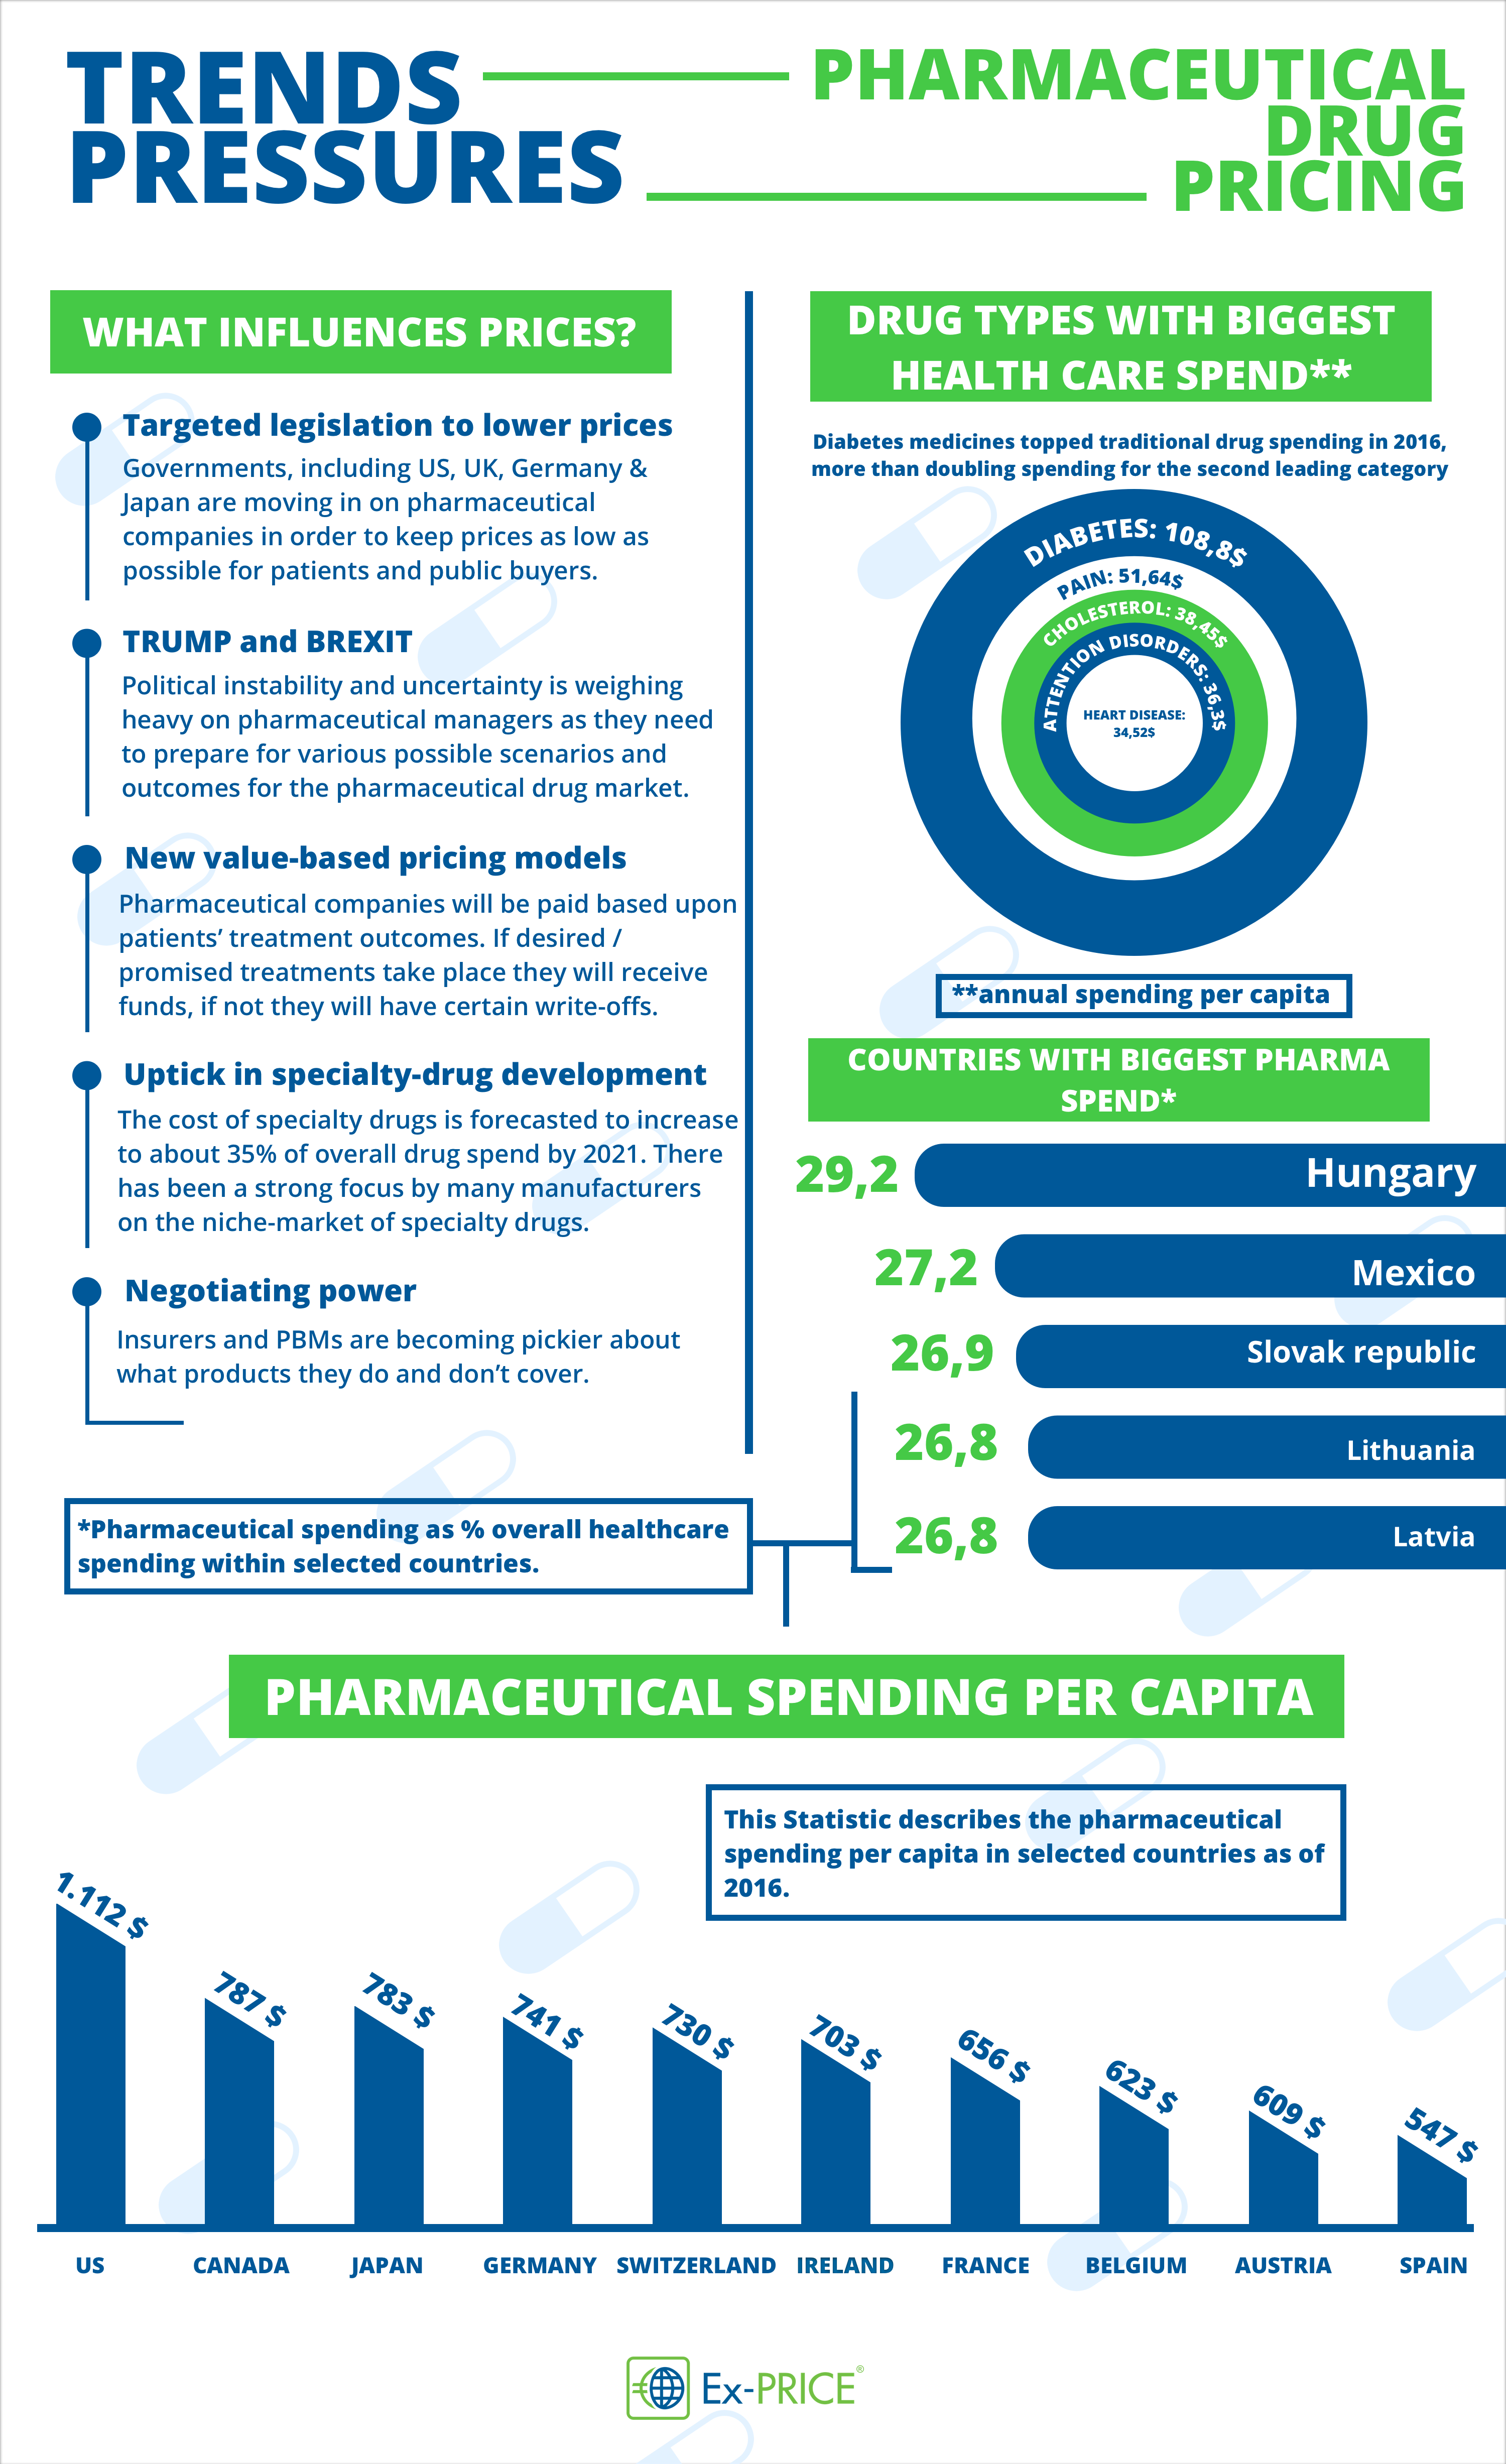 Pricing Strategy for pharmaceutical drugs